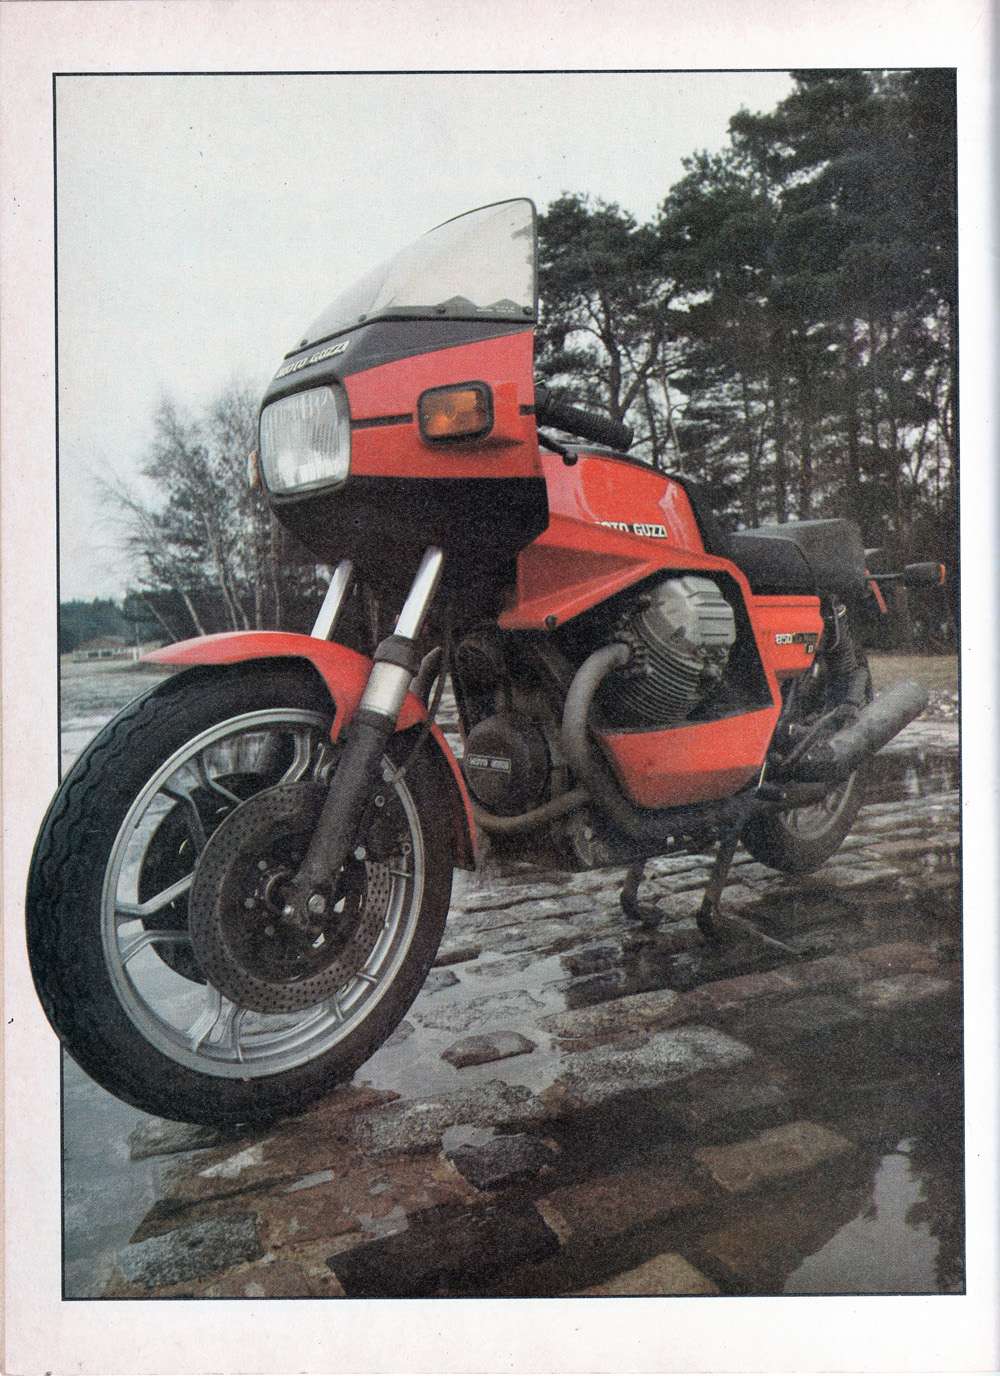 1979 Moto Guzzi 850 LeMans MkII road test 01.jpg